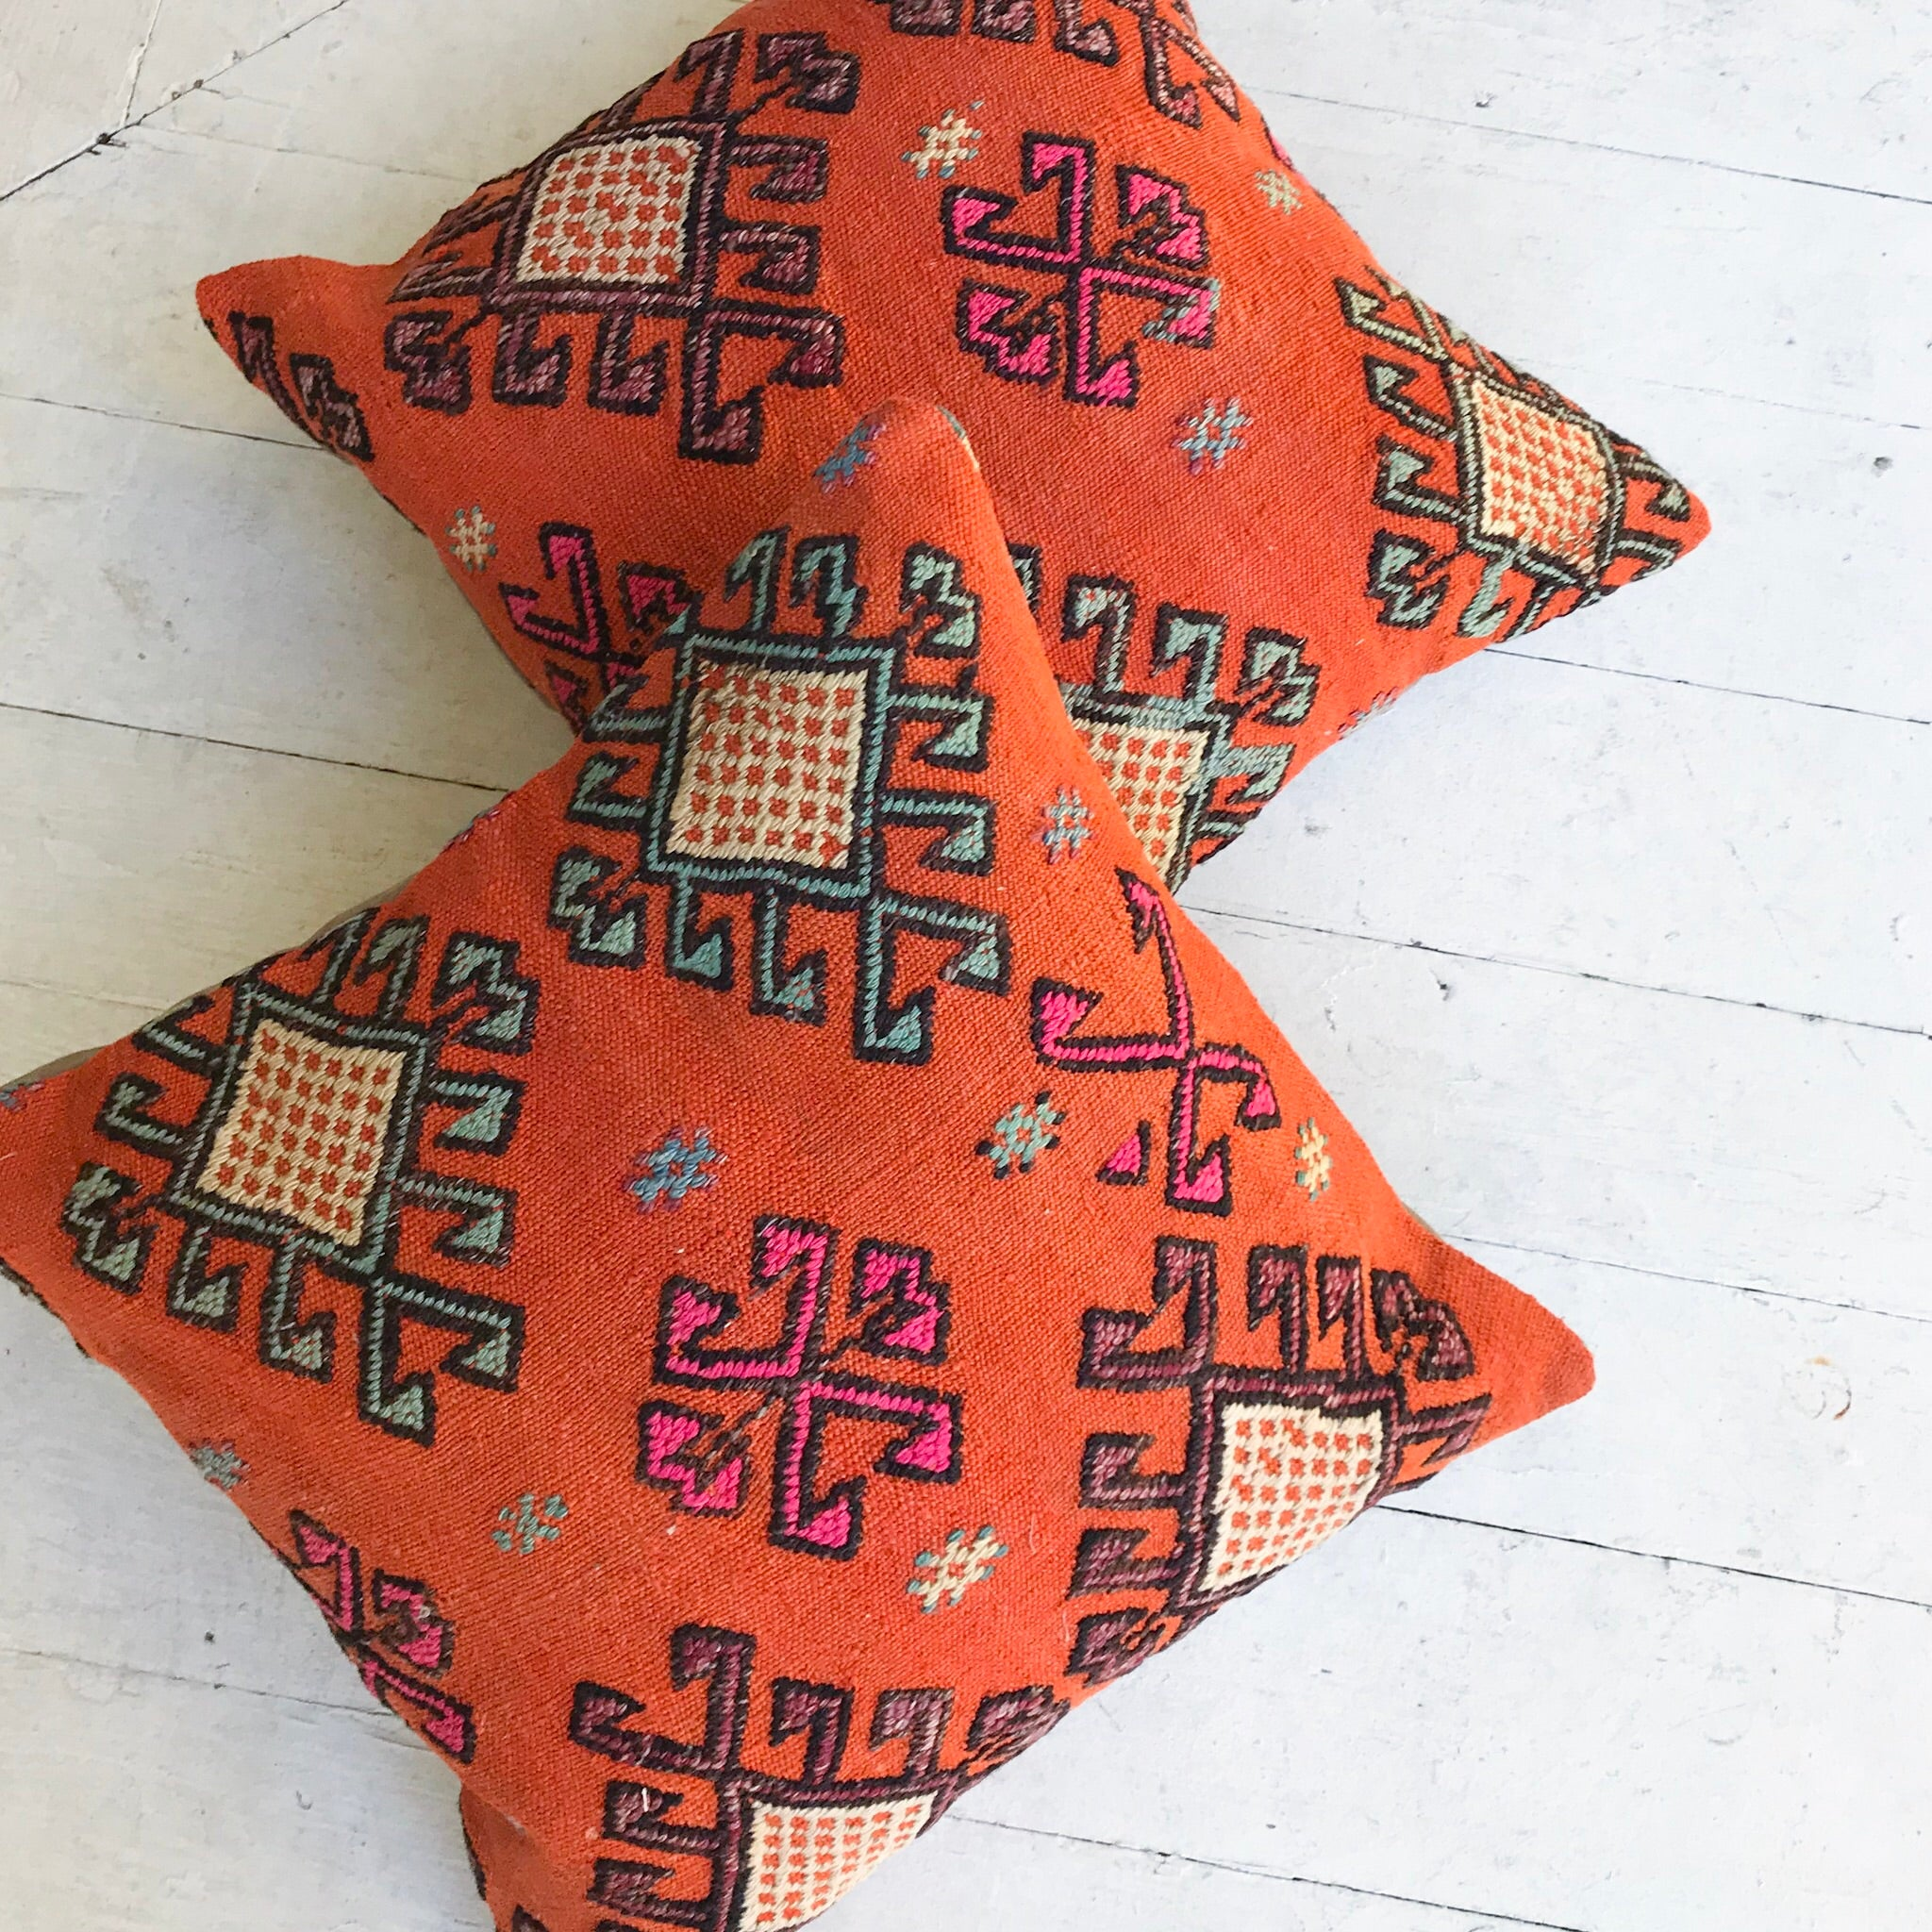 Cicim rugs have embroidery and beautiful detail. Our pillowcases are made from recycled handwoven vintage Turkish kilims.  Zipper closure. Insert not included. Natural dyes. Wool. Each pillow is one of kind.   This is a set of 2. Orange background with black, teal, pink and cream accents.